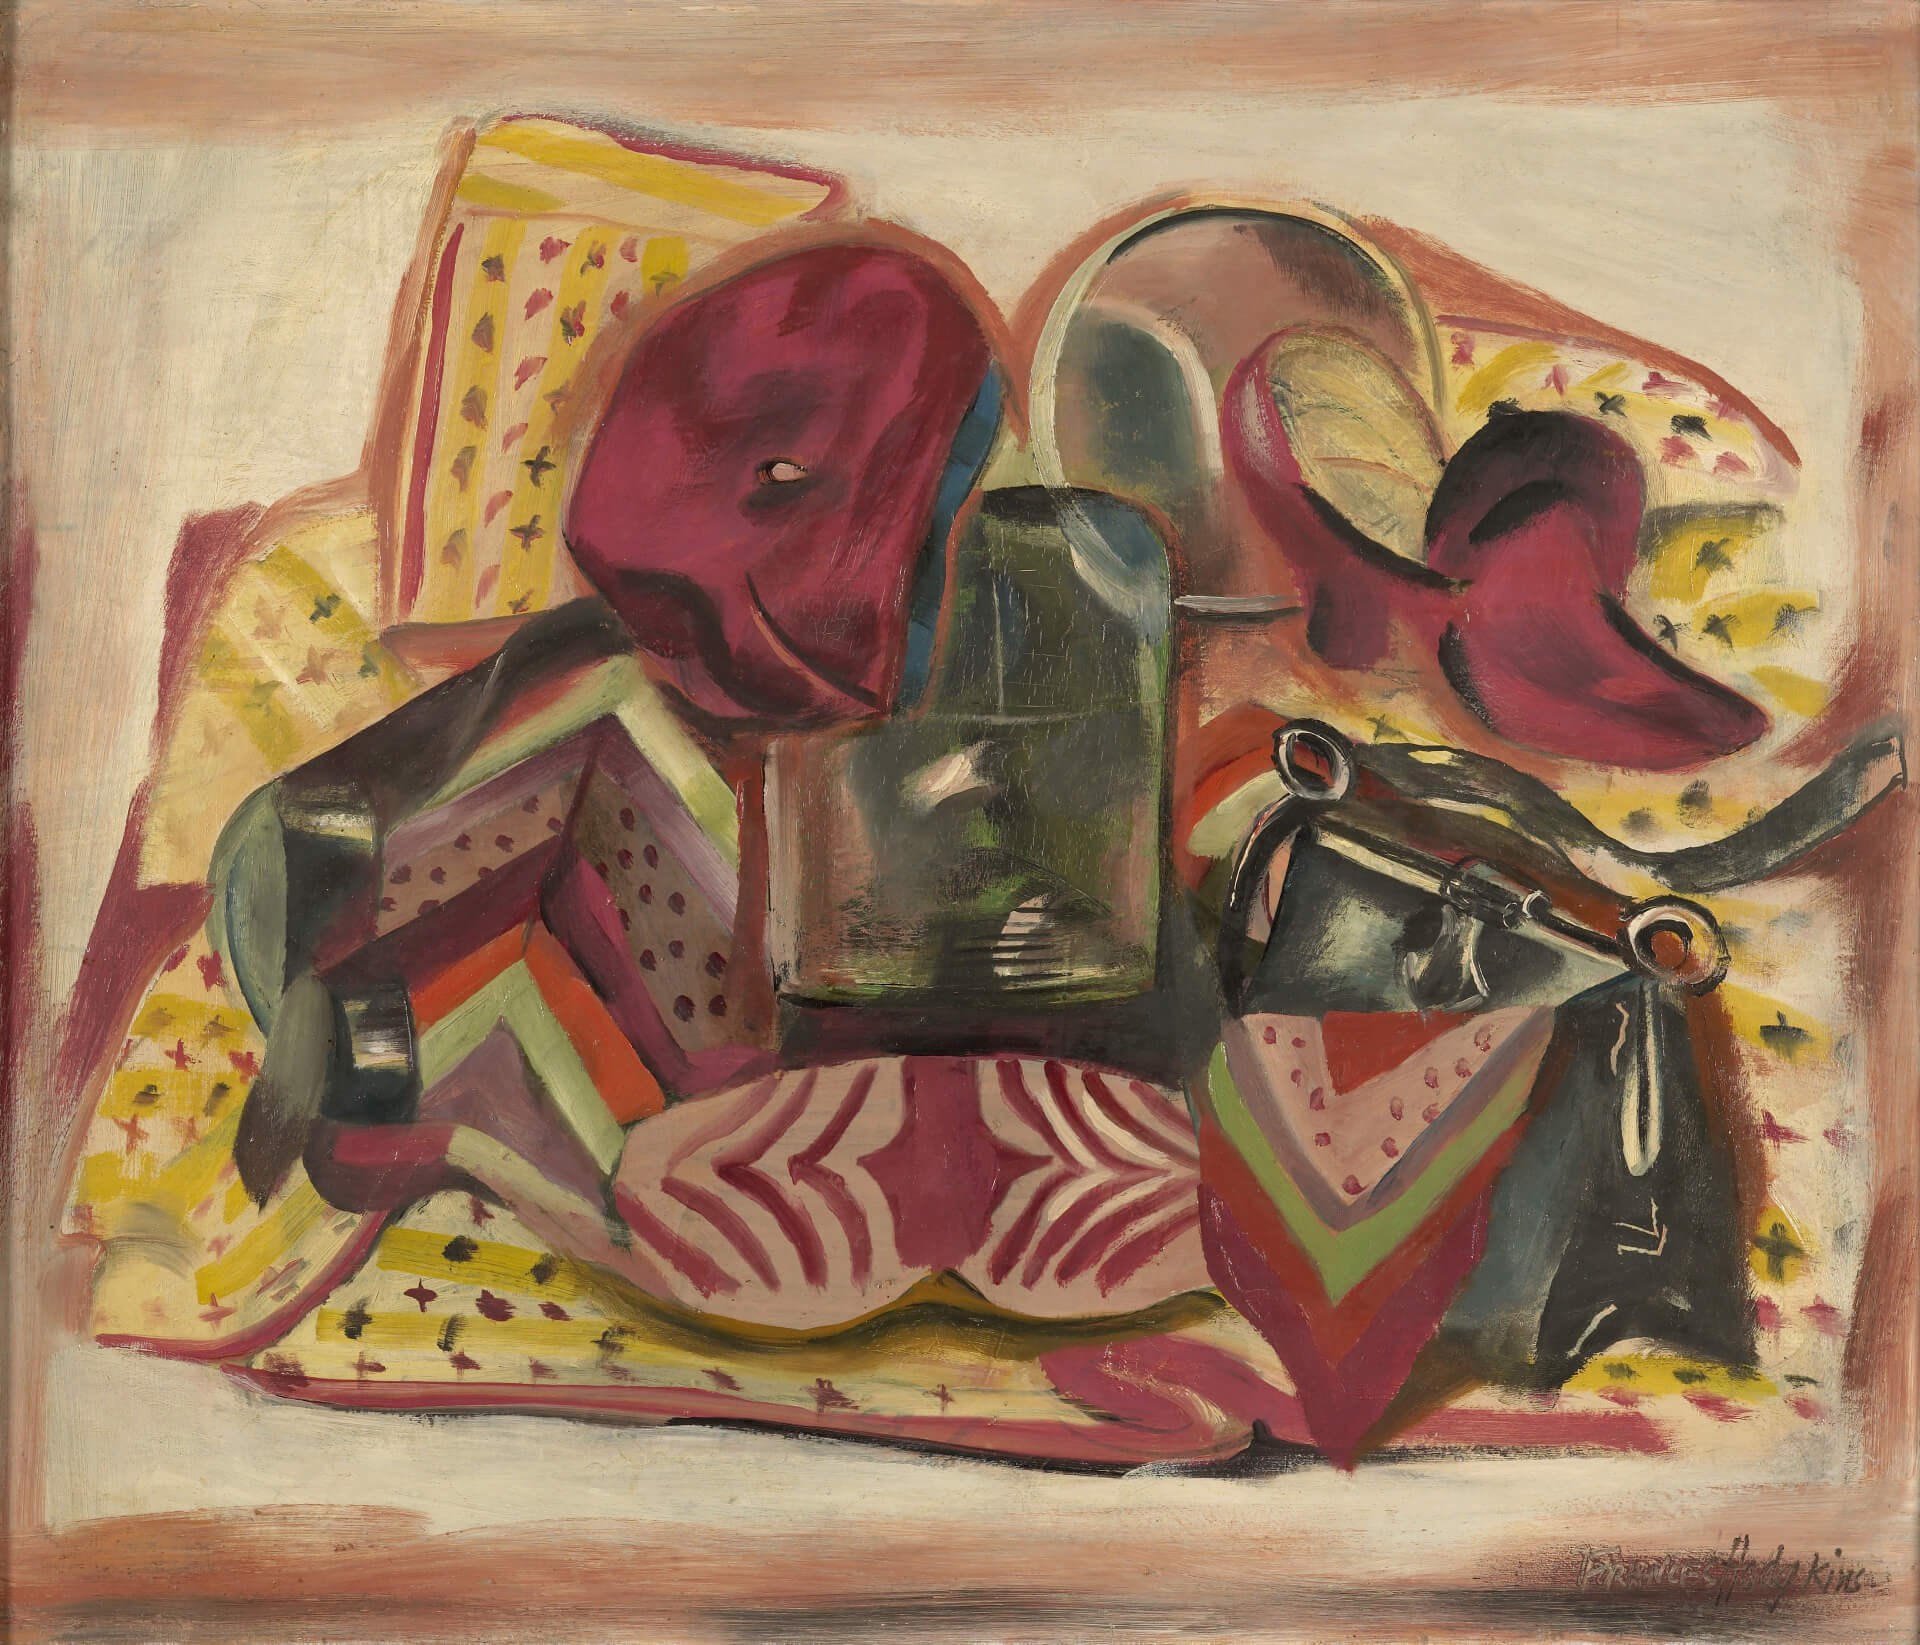 Frances Hodgkins, Still life: Self-portrait, about 1935, oil on panel. Purchased 1999 with New Zealand Lottery Grants Board funds. Te Papa